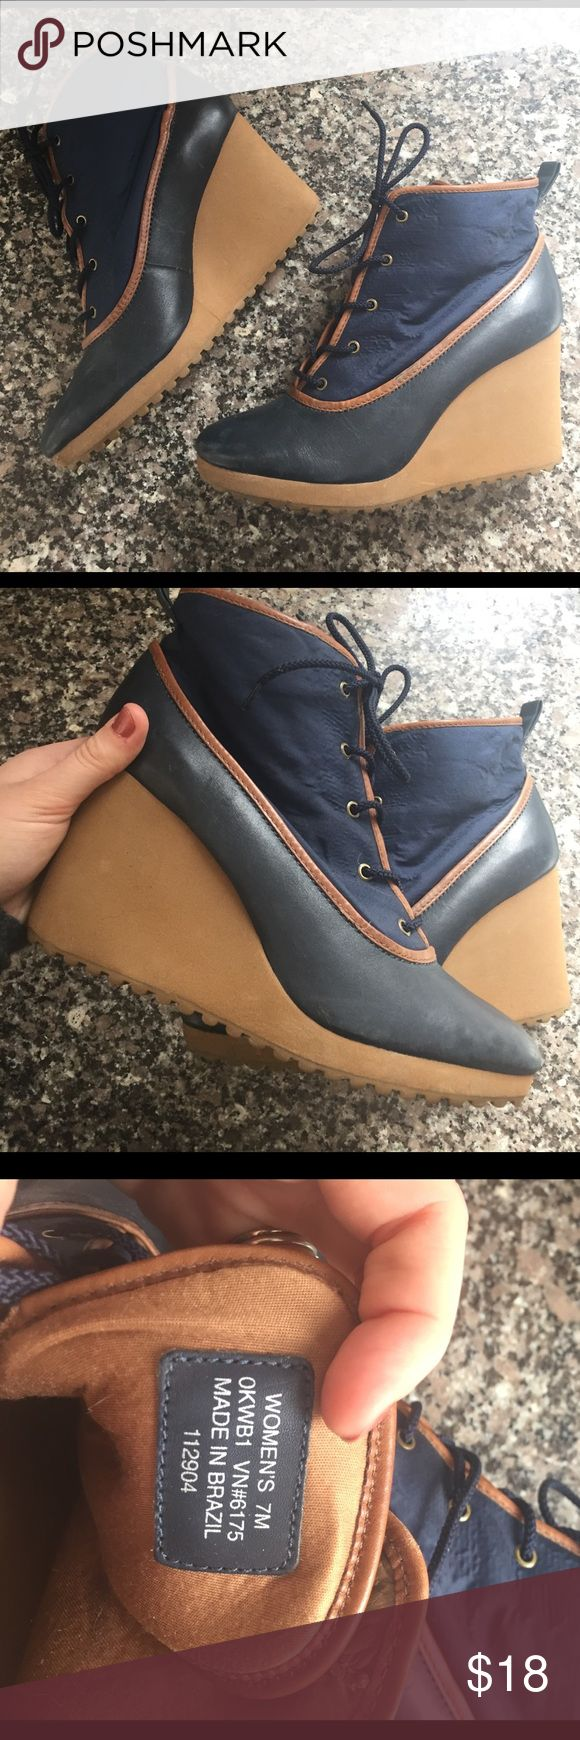 LL Bean wedge boots size 7M Navy and brown wedge boots from LL Bean ! Fashionable and weather friendly L.L. Bean Shoes Heeled Boots